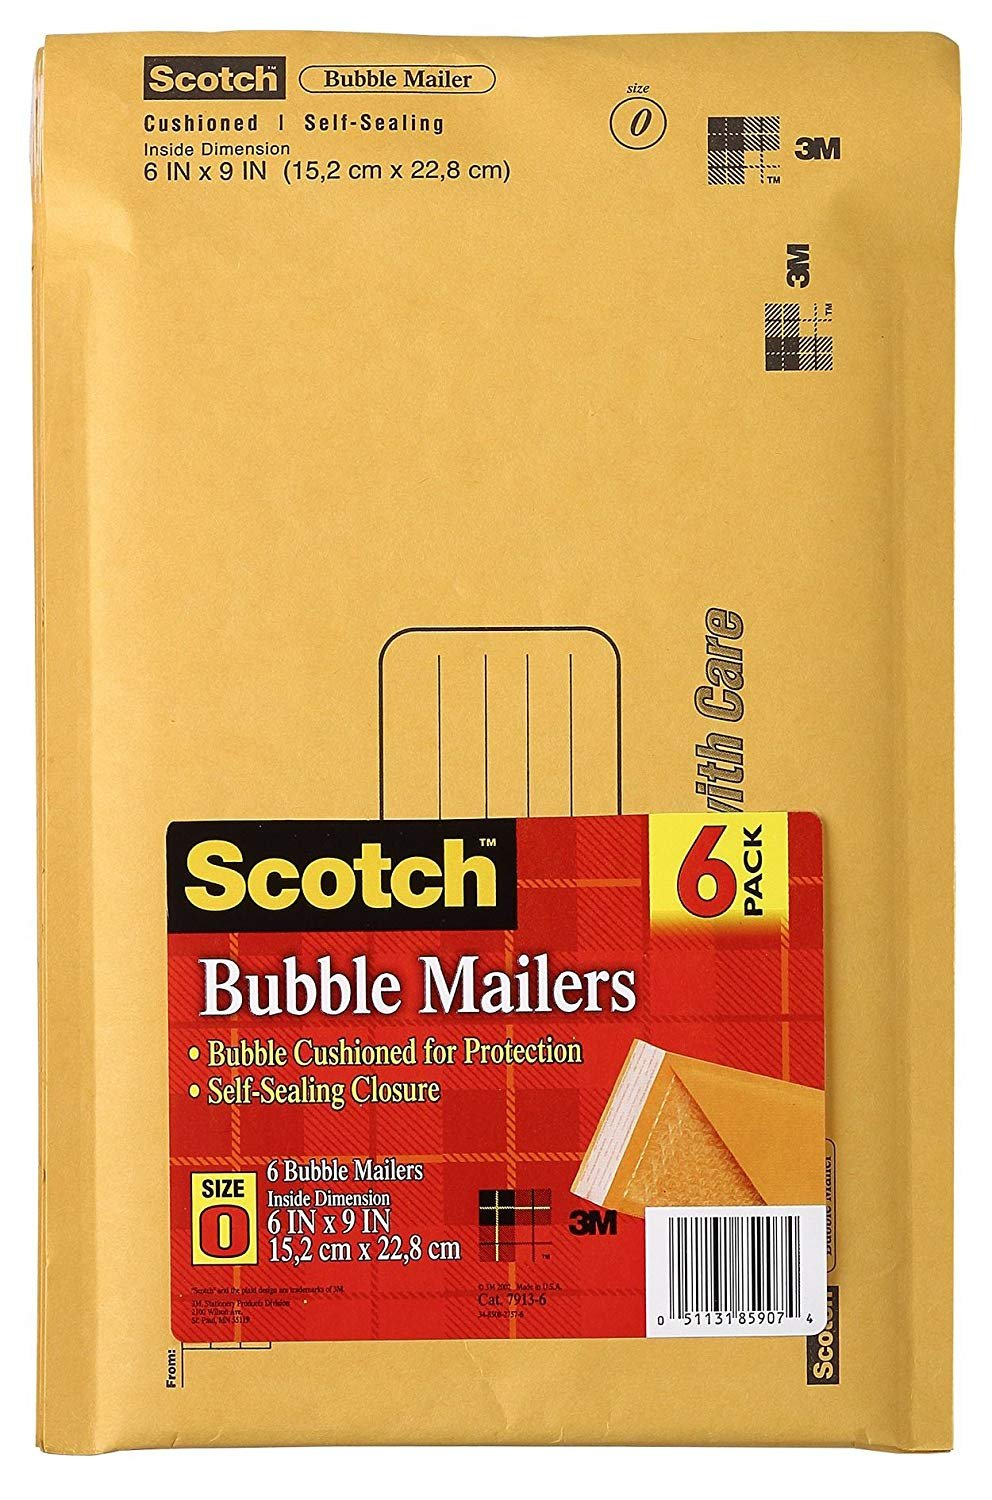 Scotch Bubble Mailer, 6 in x 9 in, Size #0, 6-Pack (7913-6)